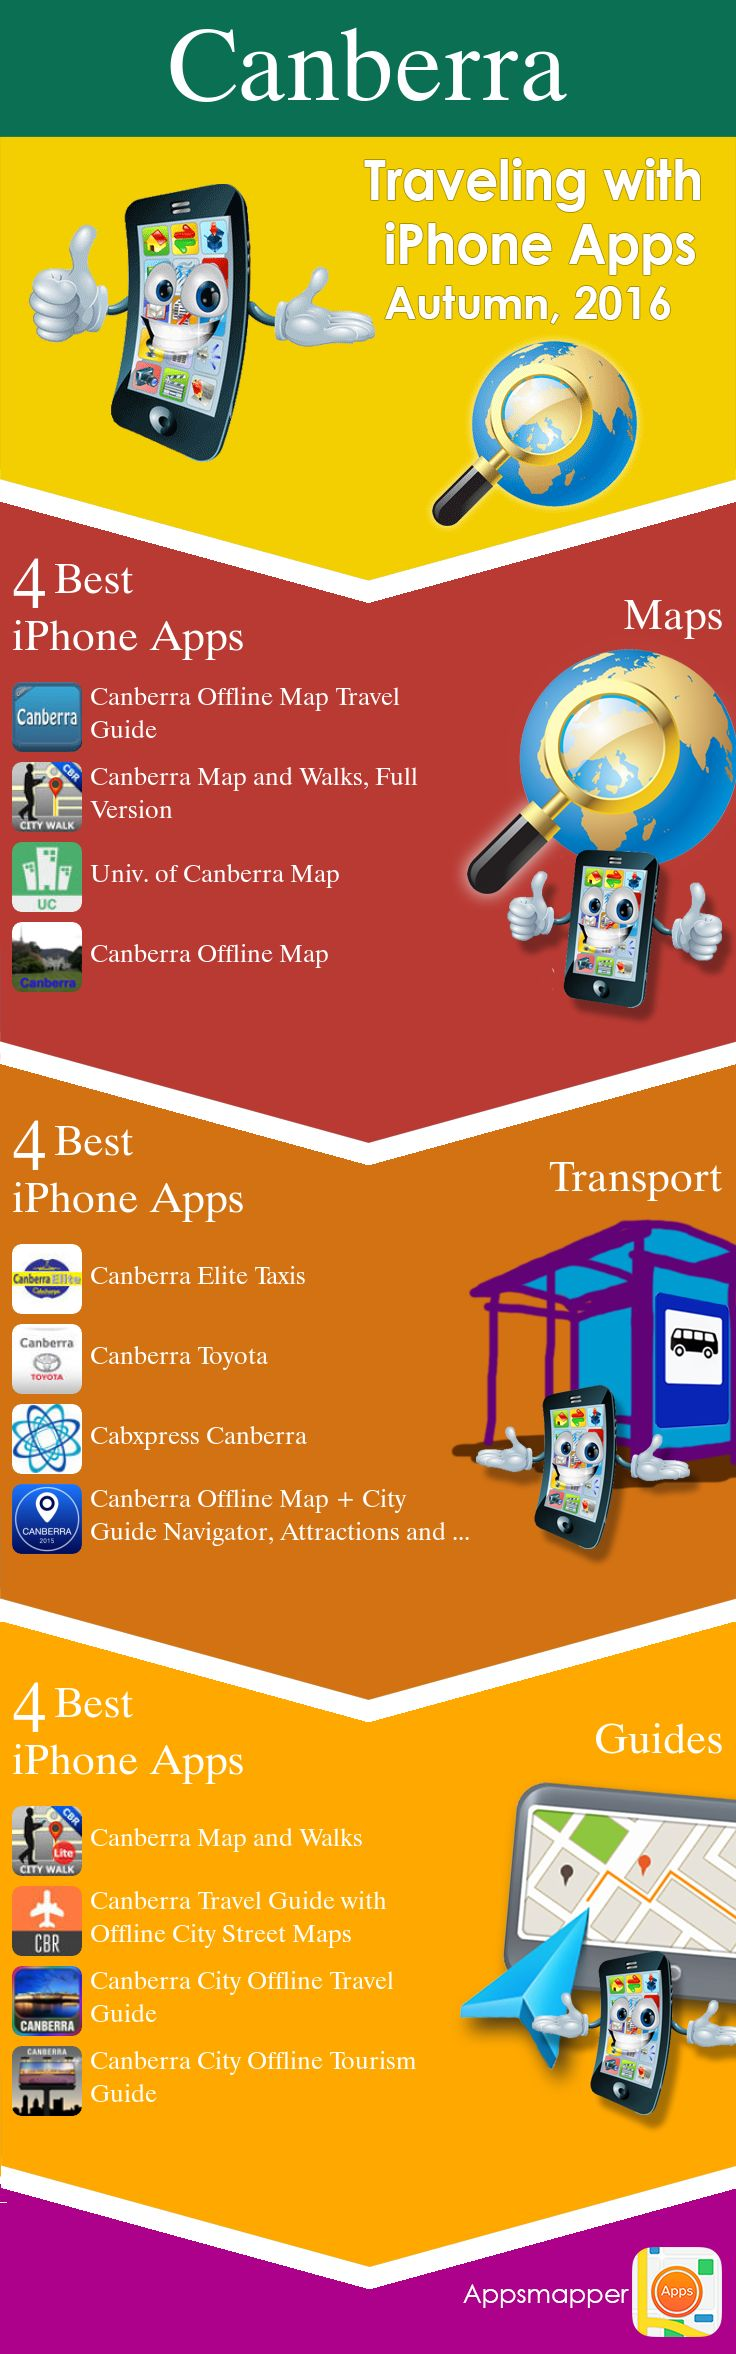 Canberra iPhone apps: Travel Guides, Maps, Transportation, Biking, Museums, Parking, Sport and apps for Students.